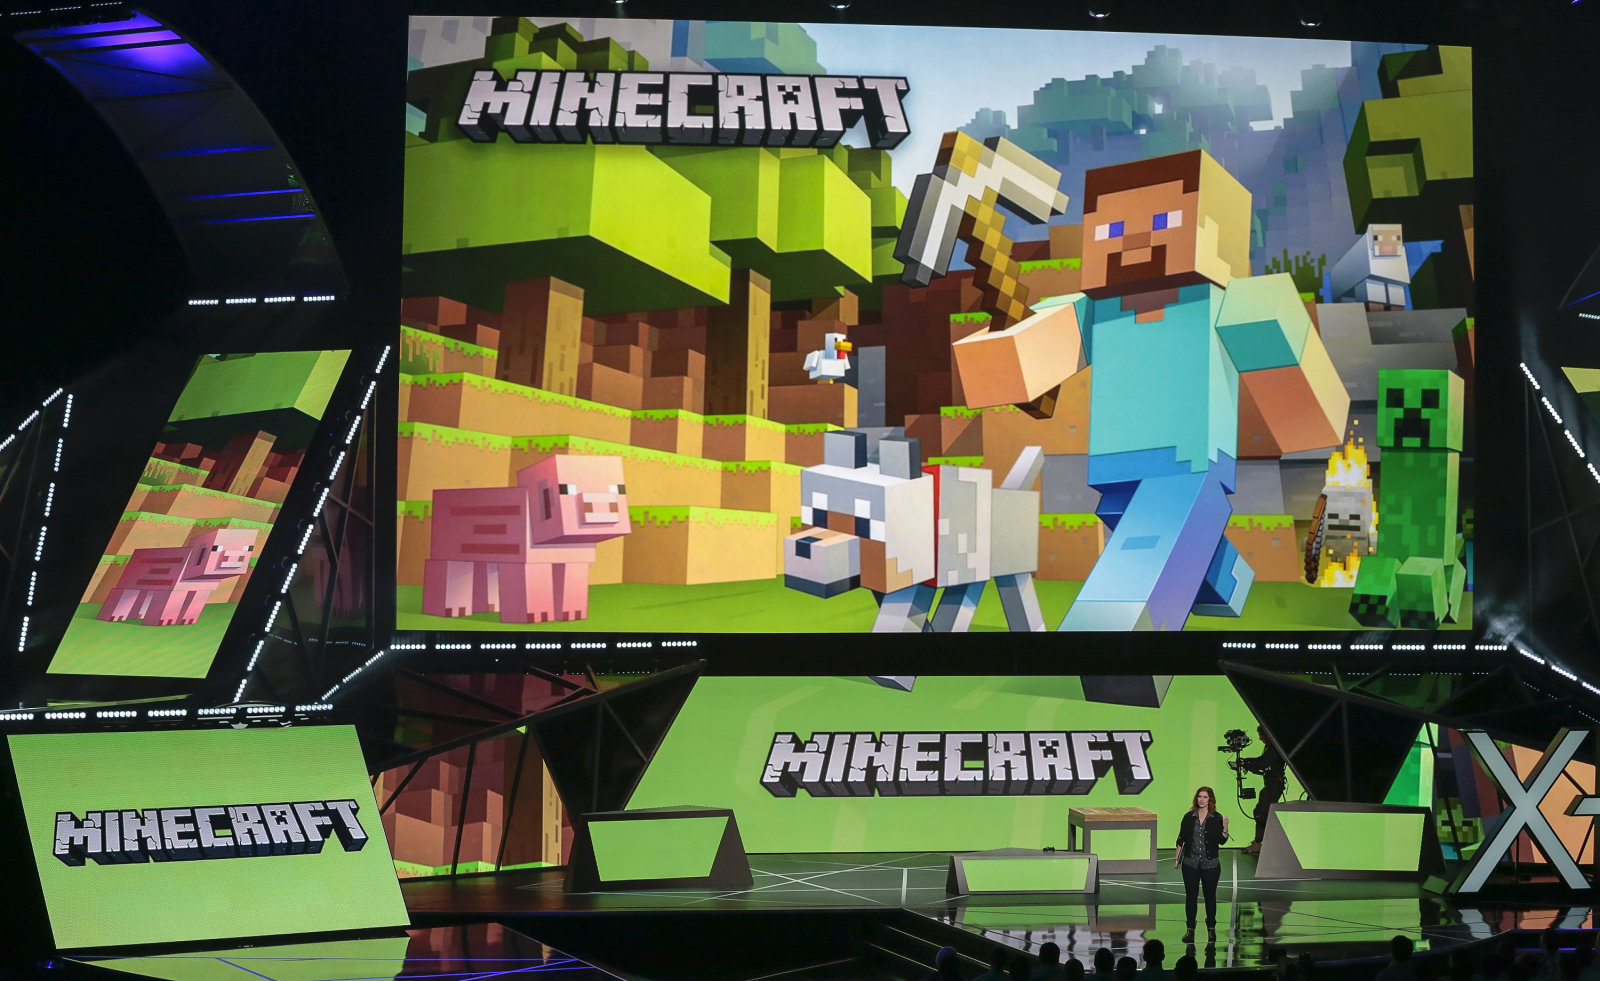 """FILE - In this June 15, 2015 file photo, Lydia Winters, at podium, shows off Microsoft's """"Minecraft"""" built specifically for HoloLens during a live demo at the Xbox E3 2015 briefing ahead of the Electronic Entertainment Expo at the University of Southern California's Galen Center in Los Angeles.The maker of Windows operating systems and Xbox game consoles constructed a $2.5 purchase of """"Minecraft"""" developer Mojang in 2014. Microsoft quickly begun incorporating the brick-building game series into its new products with the release of a Windows 10 edition of """"Minecraft,"""" as well as demonstrating an augmented reality rendition for use with its prototype HoloLens headset at industry trade events in 2015. (AP Photo/Damian Dovarganes, File)"""